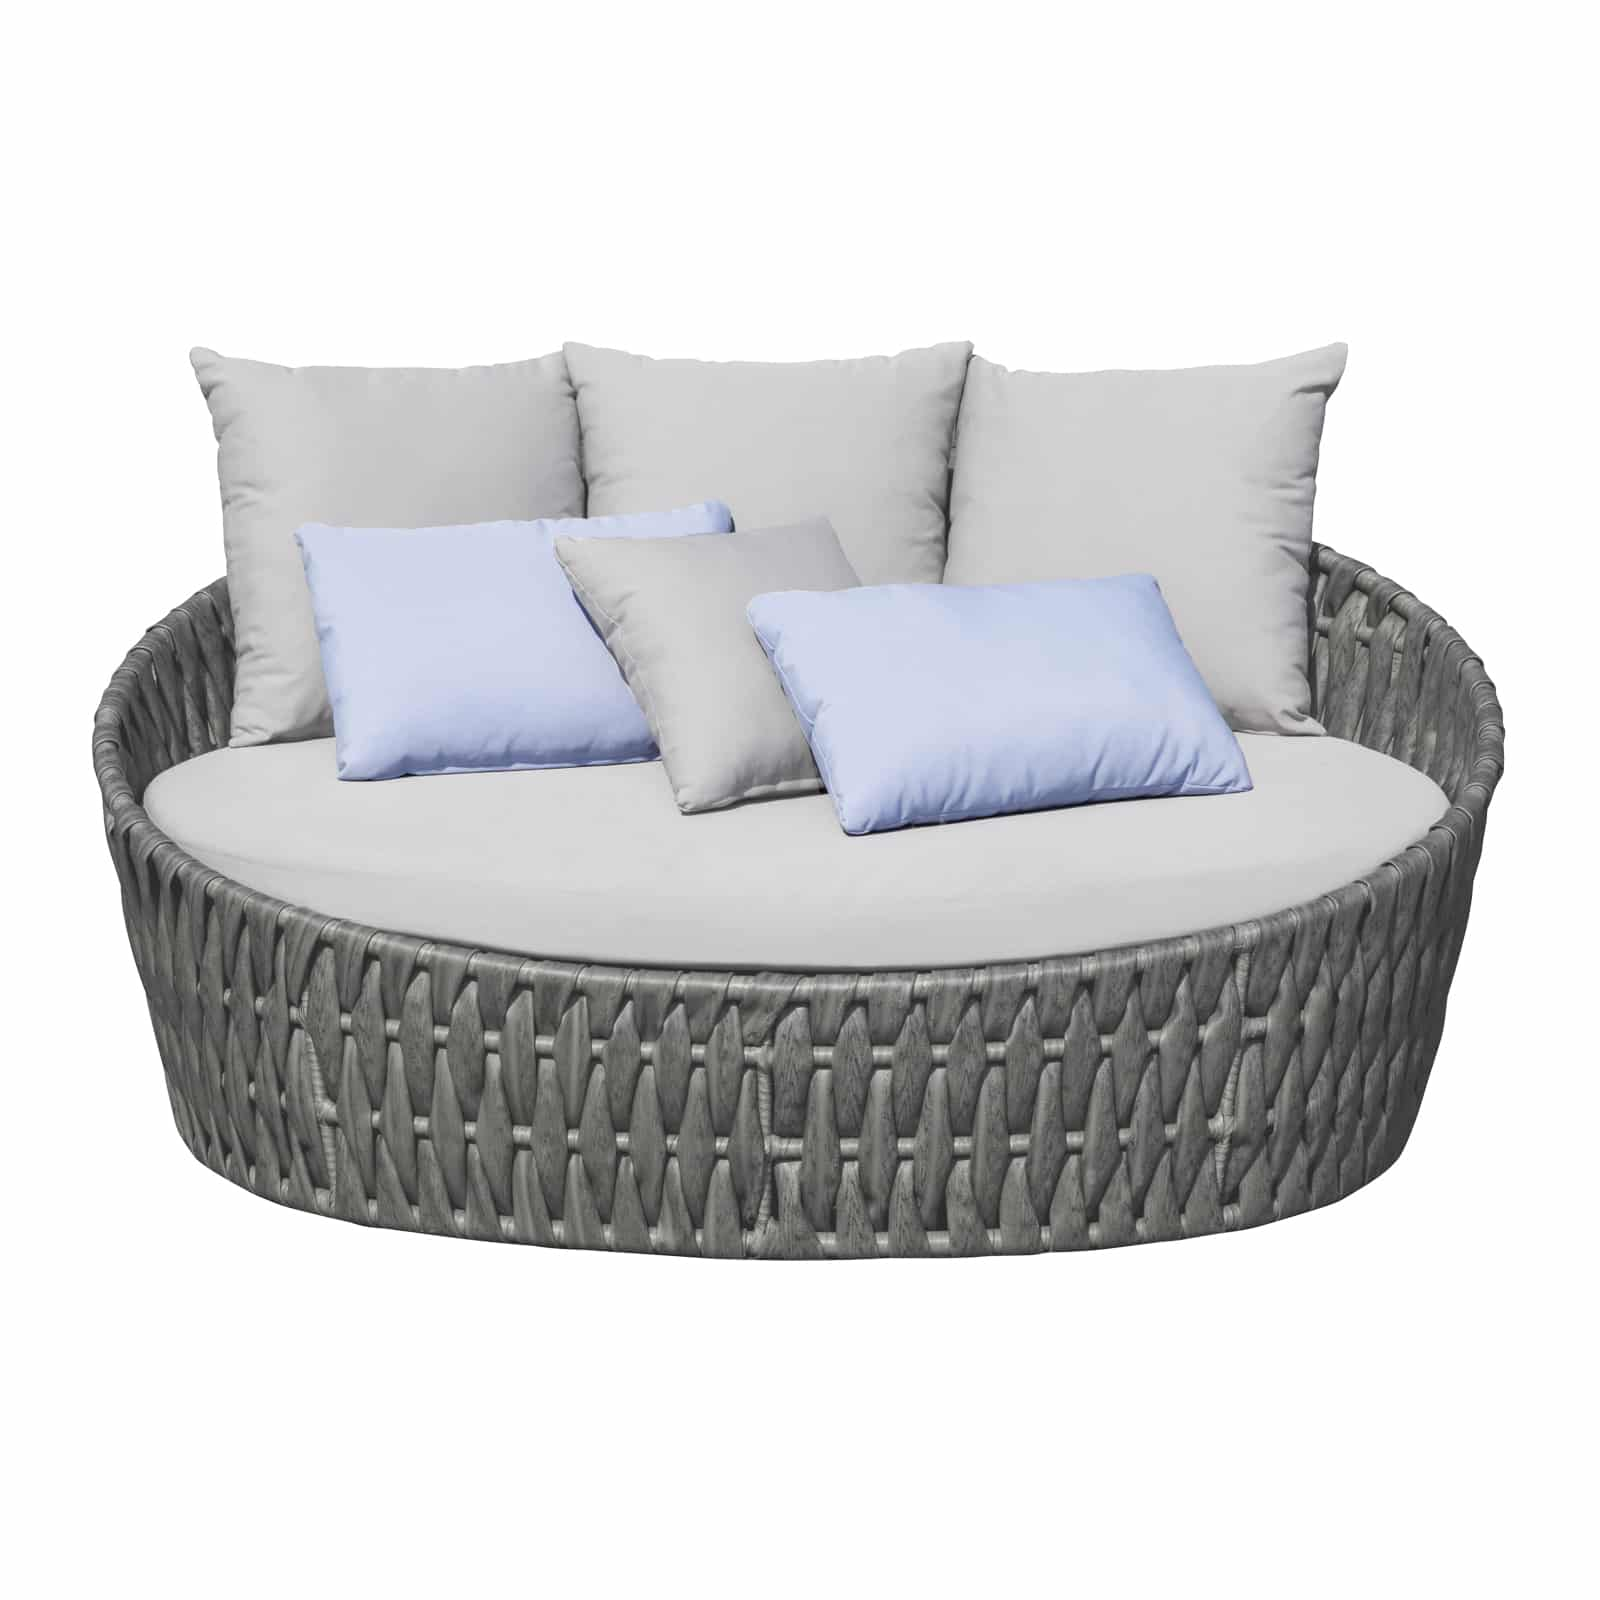 SourceOutdoor_AriaDaybed_1-SO-2028-232.jpg